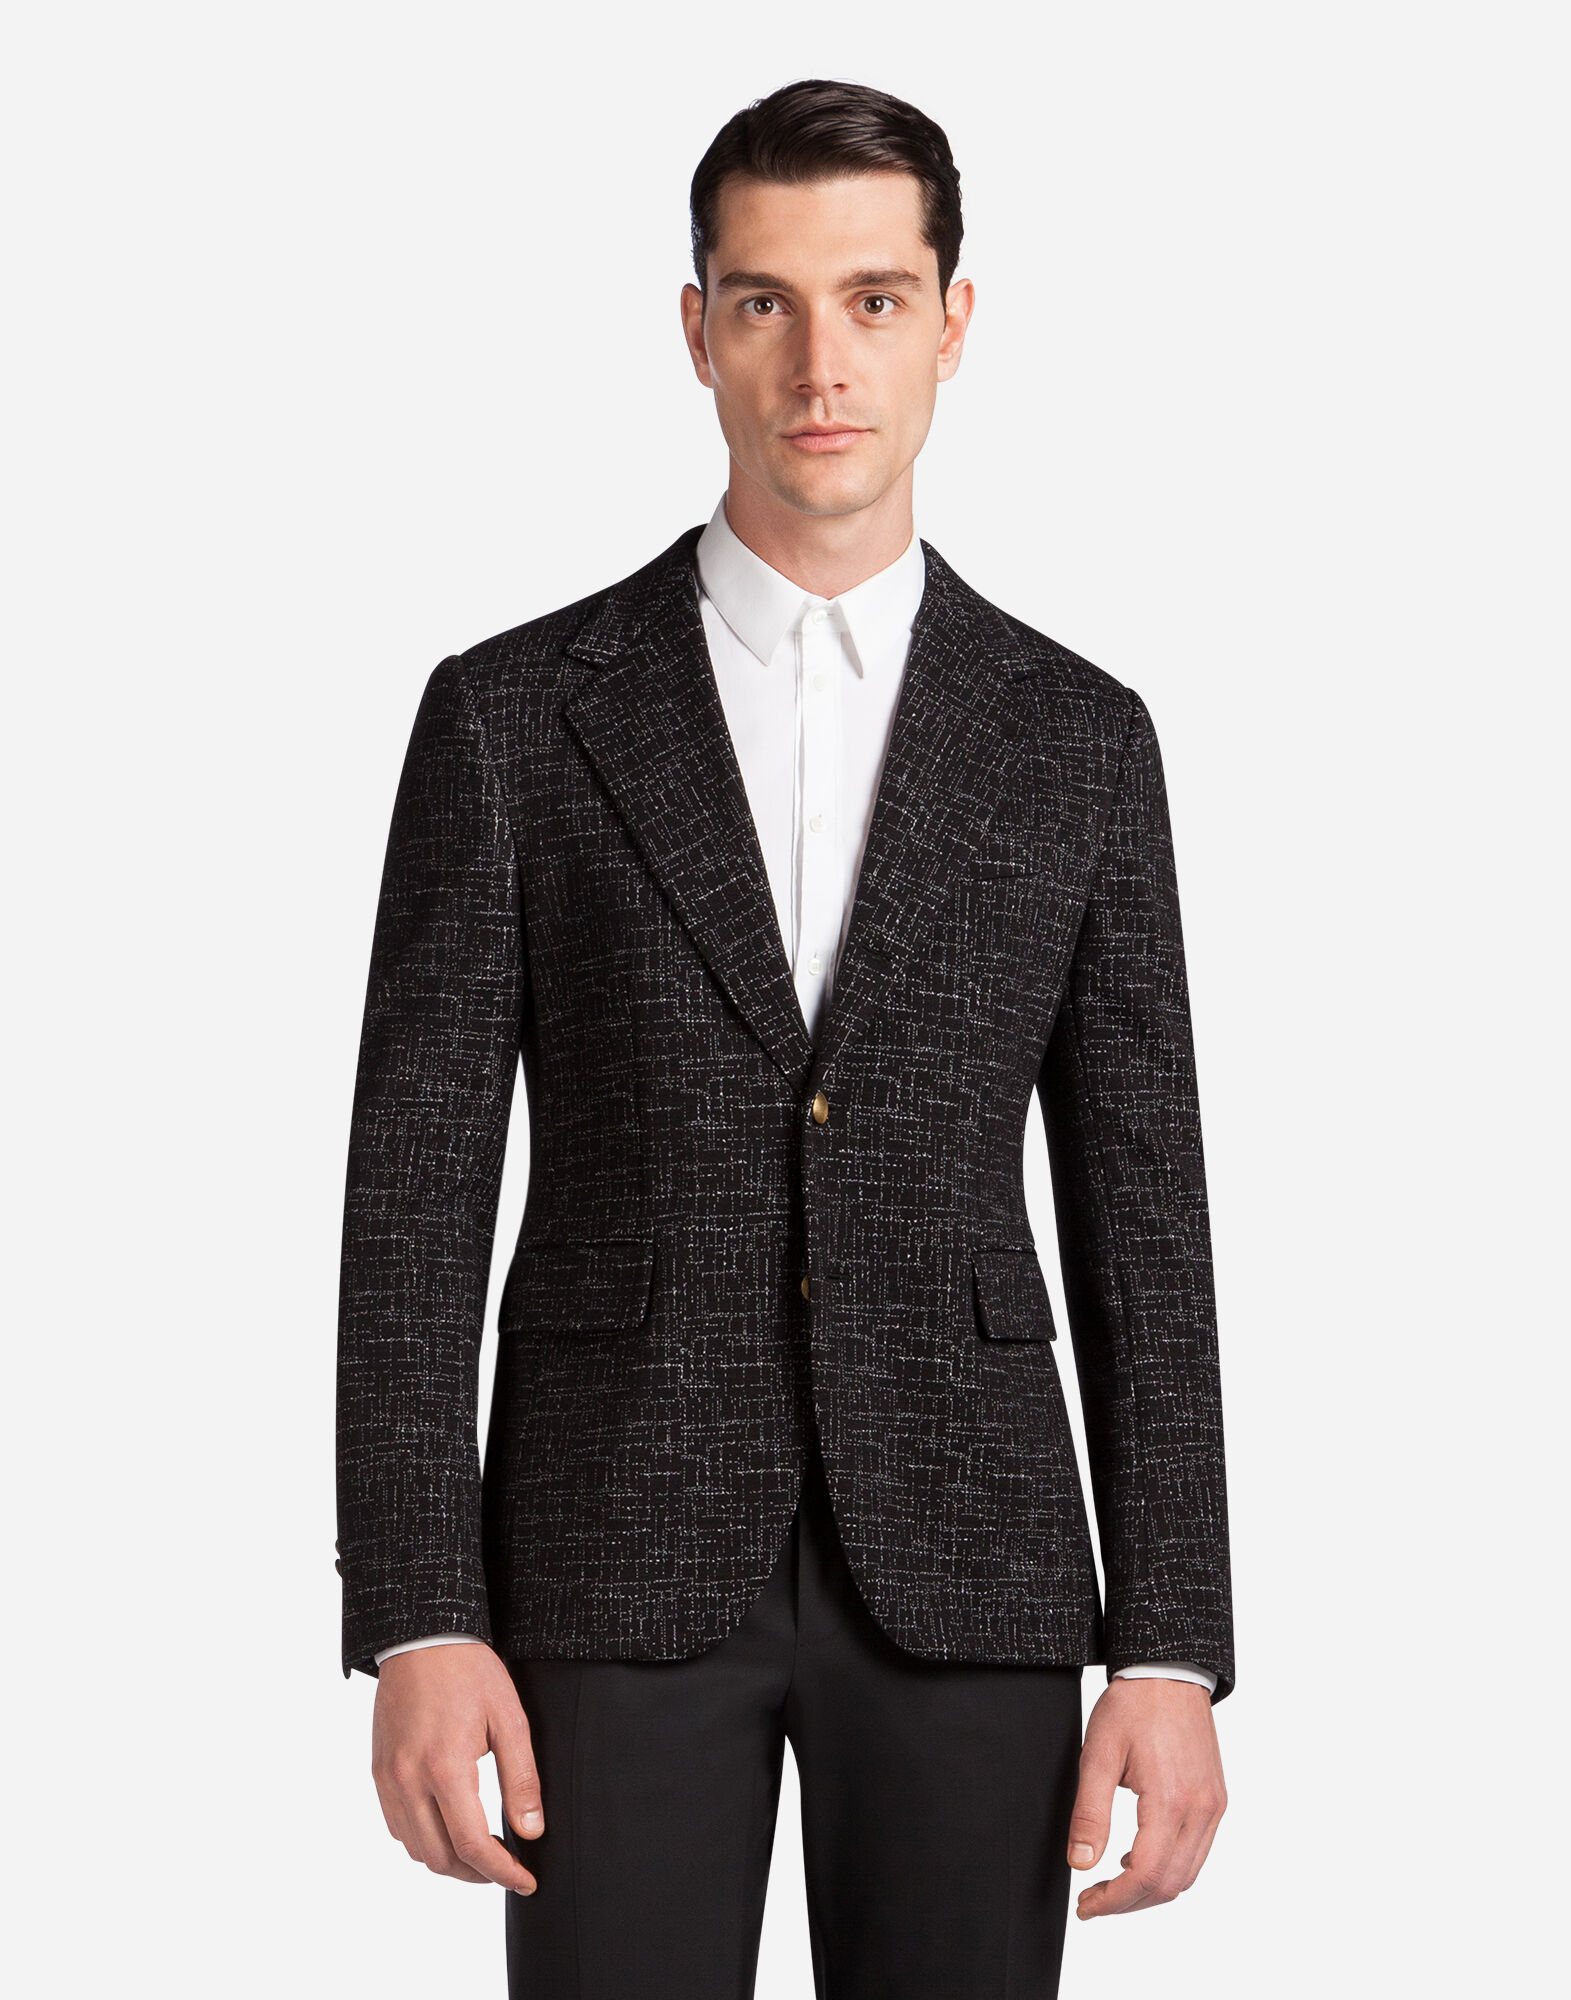 MICRO-PATTERNED JERSEY JACKET